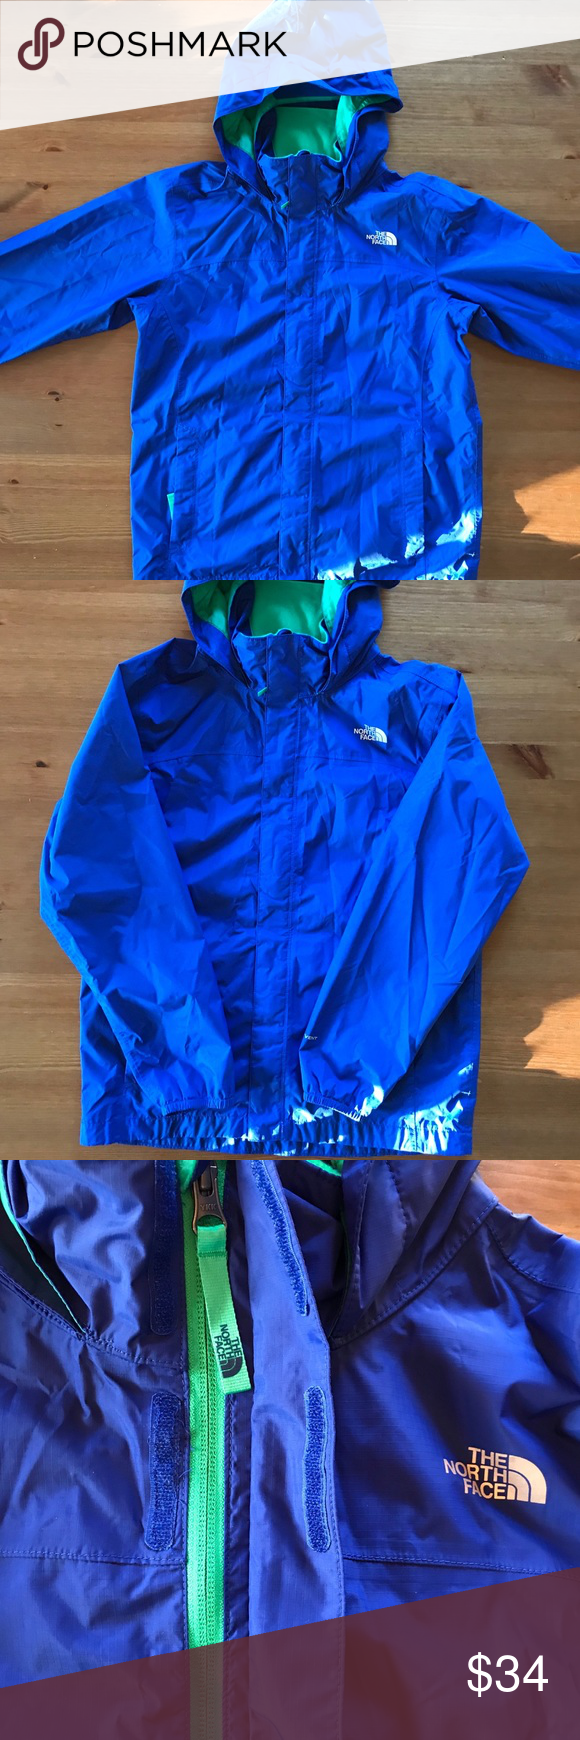 494bb91efb The North Face Windbreaker Dryvent light jacket Windbreaker rain jacket in  great clean condition Colors Blue